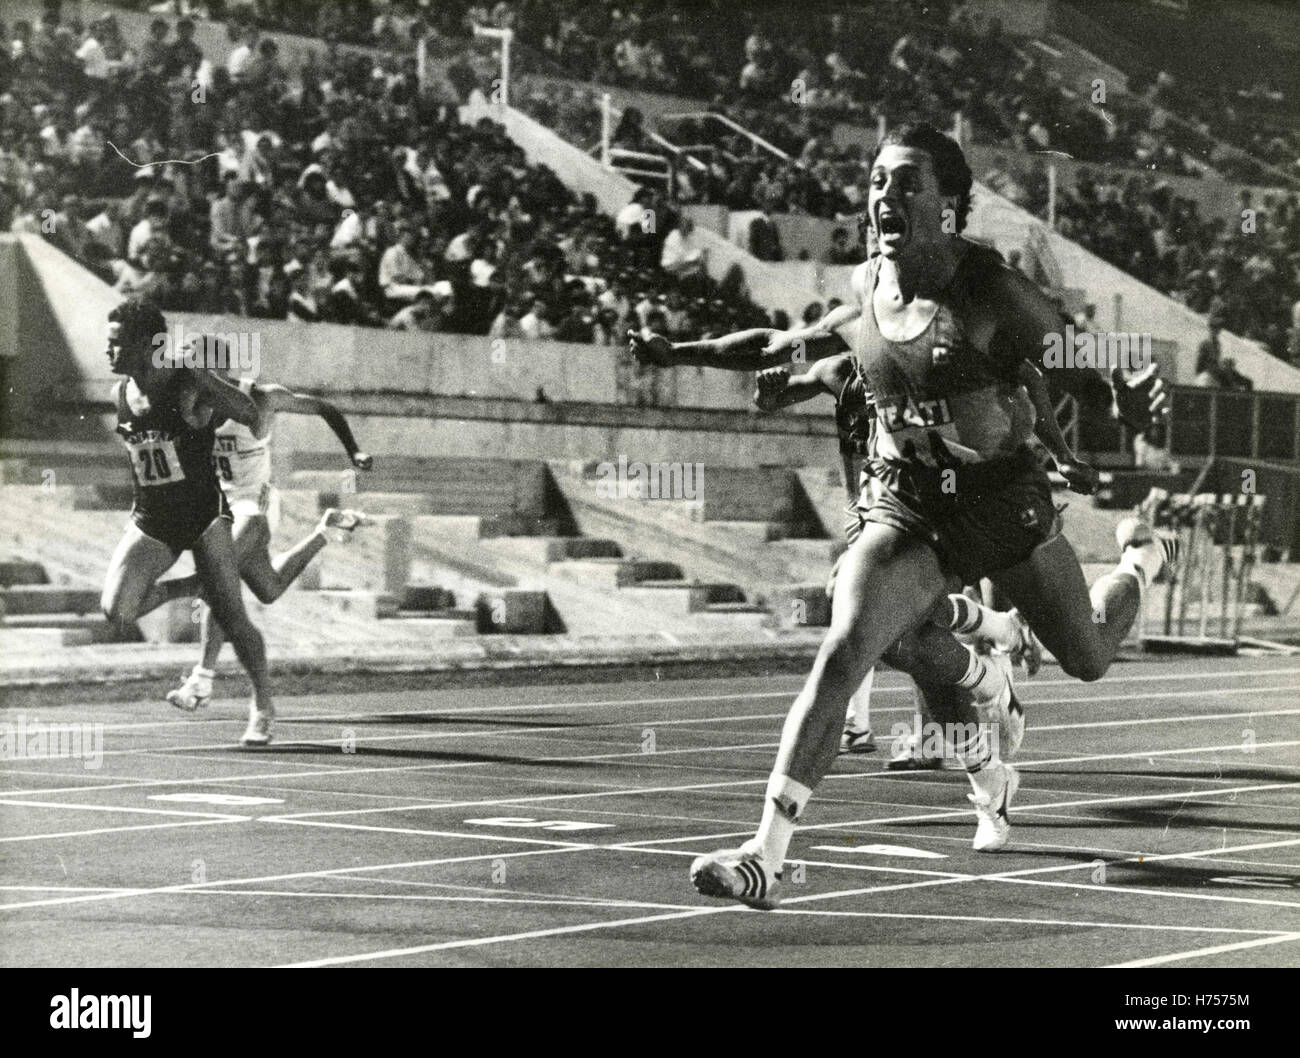 Athlete Stefano Tilli crosses the finish line of the 100 meters at the Italian Championships 1984 - Stock Image